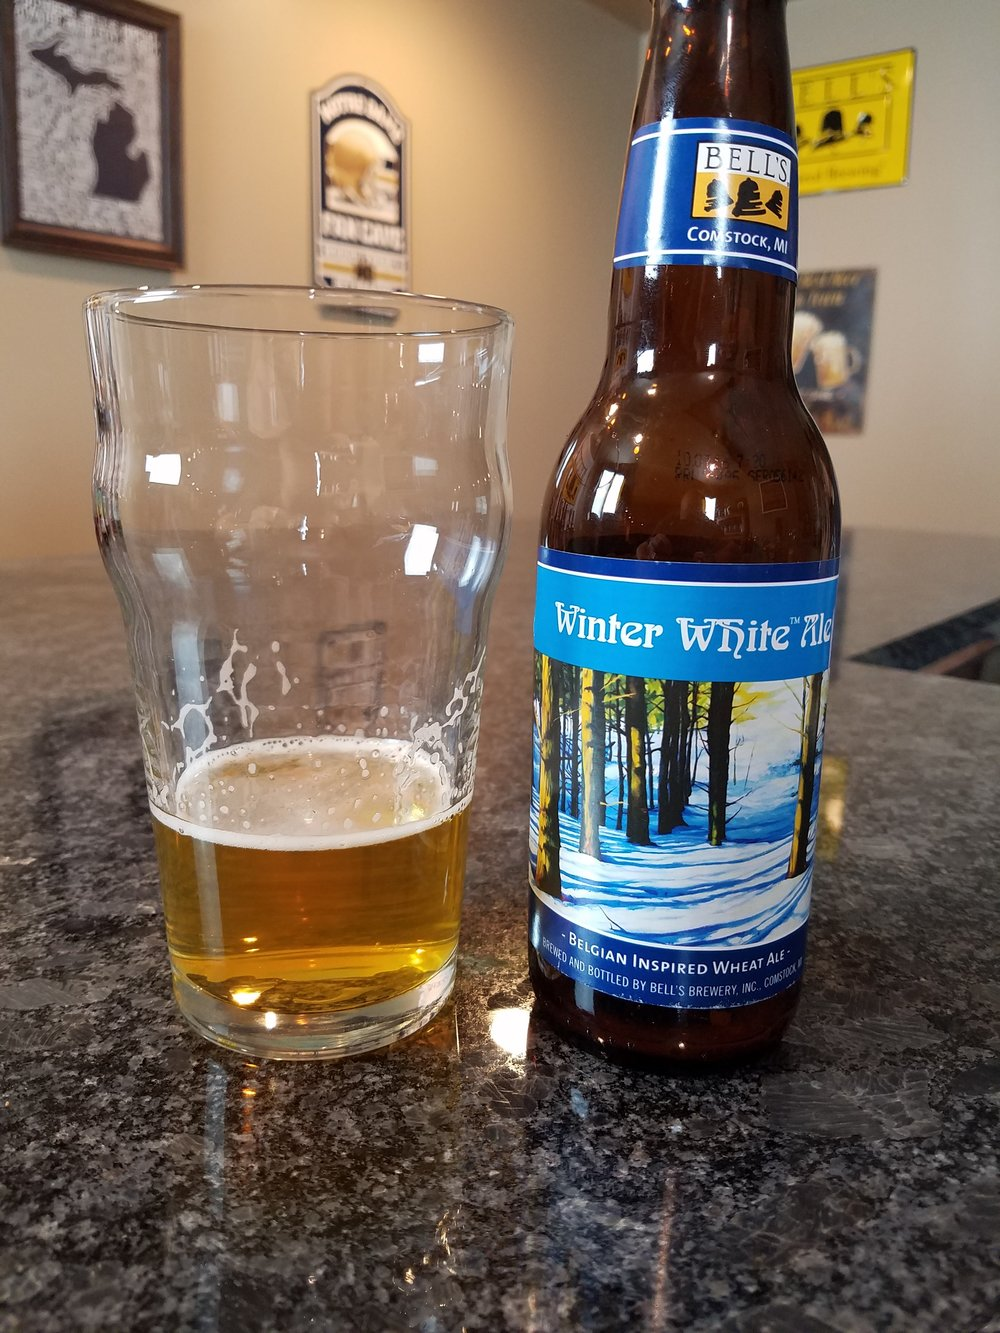 Winter White Ale 5% ABV - Want to see the Video review? Click on the image.